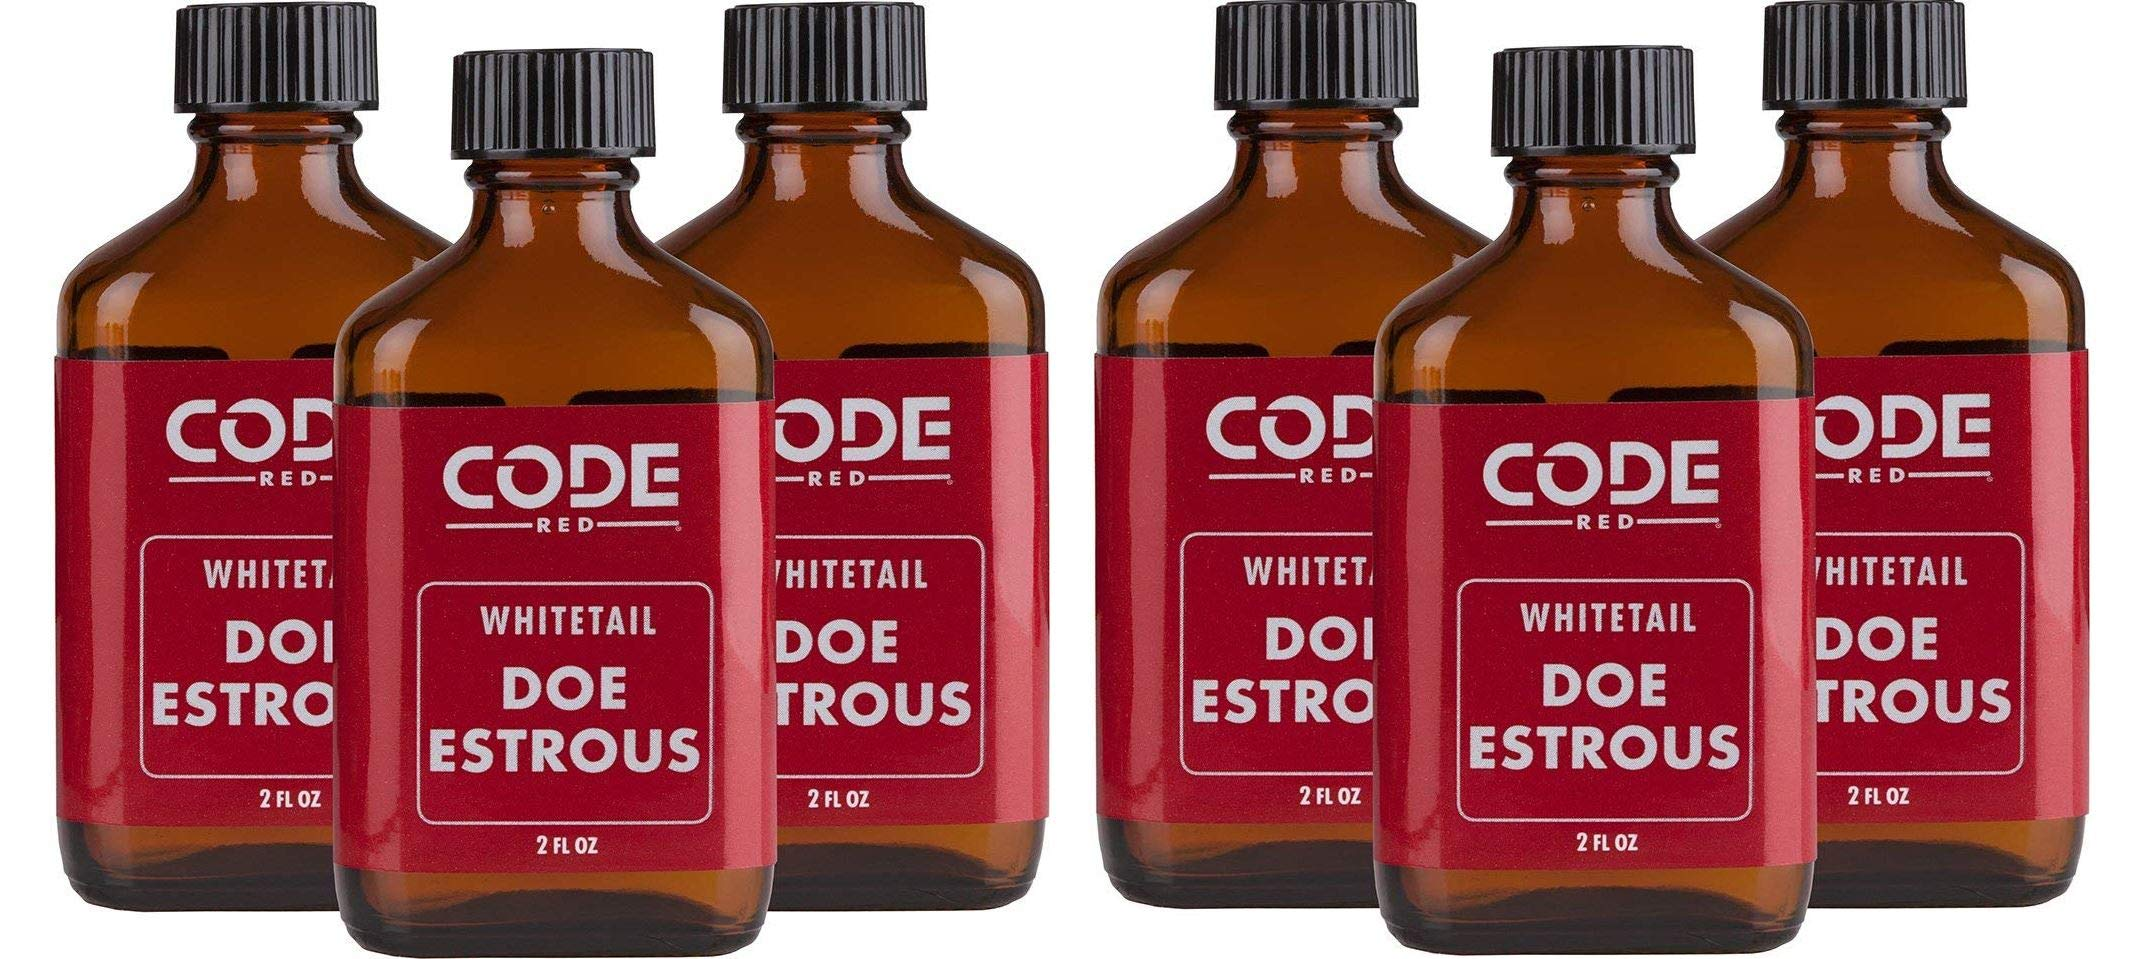 Code Blue Code Red Whitetail Doe Estrous Triple Pack (2-(Pack))